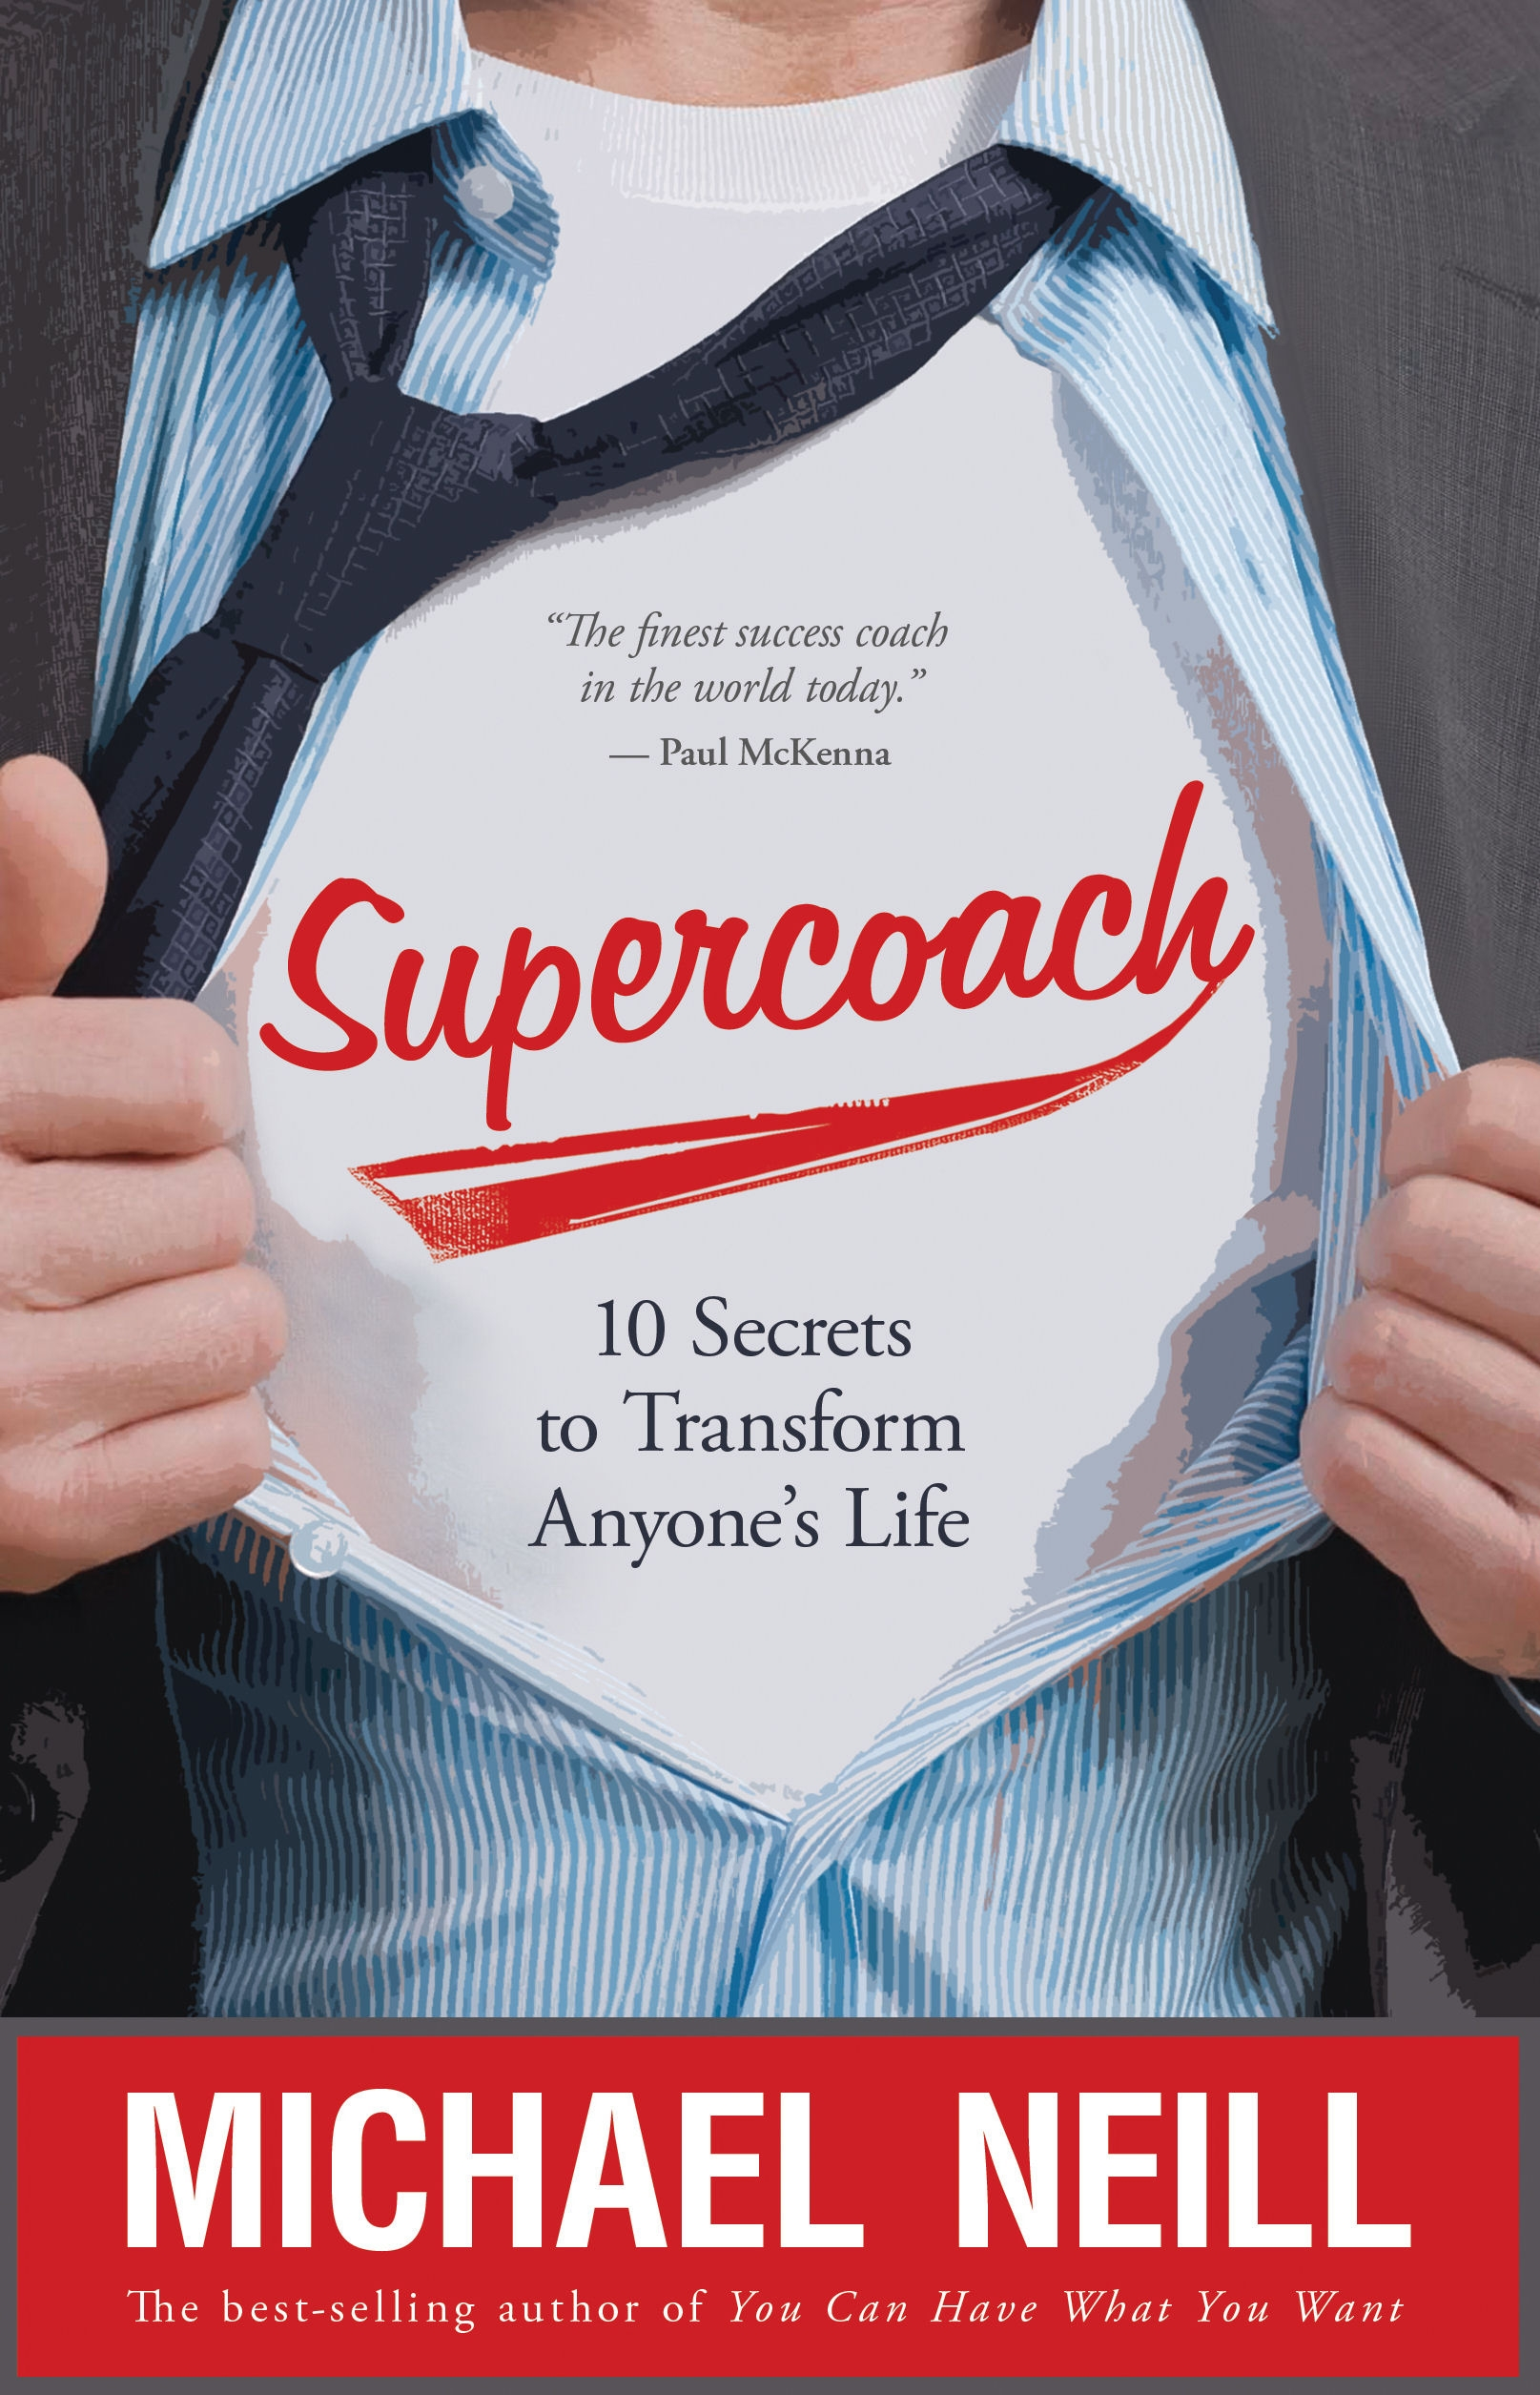 Supercoach 10 Secrets to Transform Anyone's Life